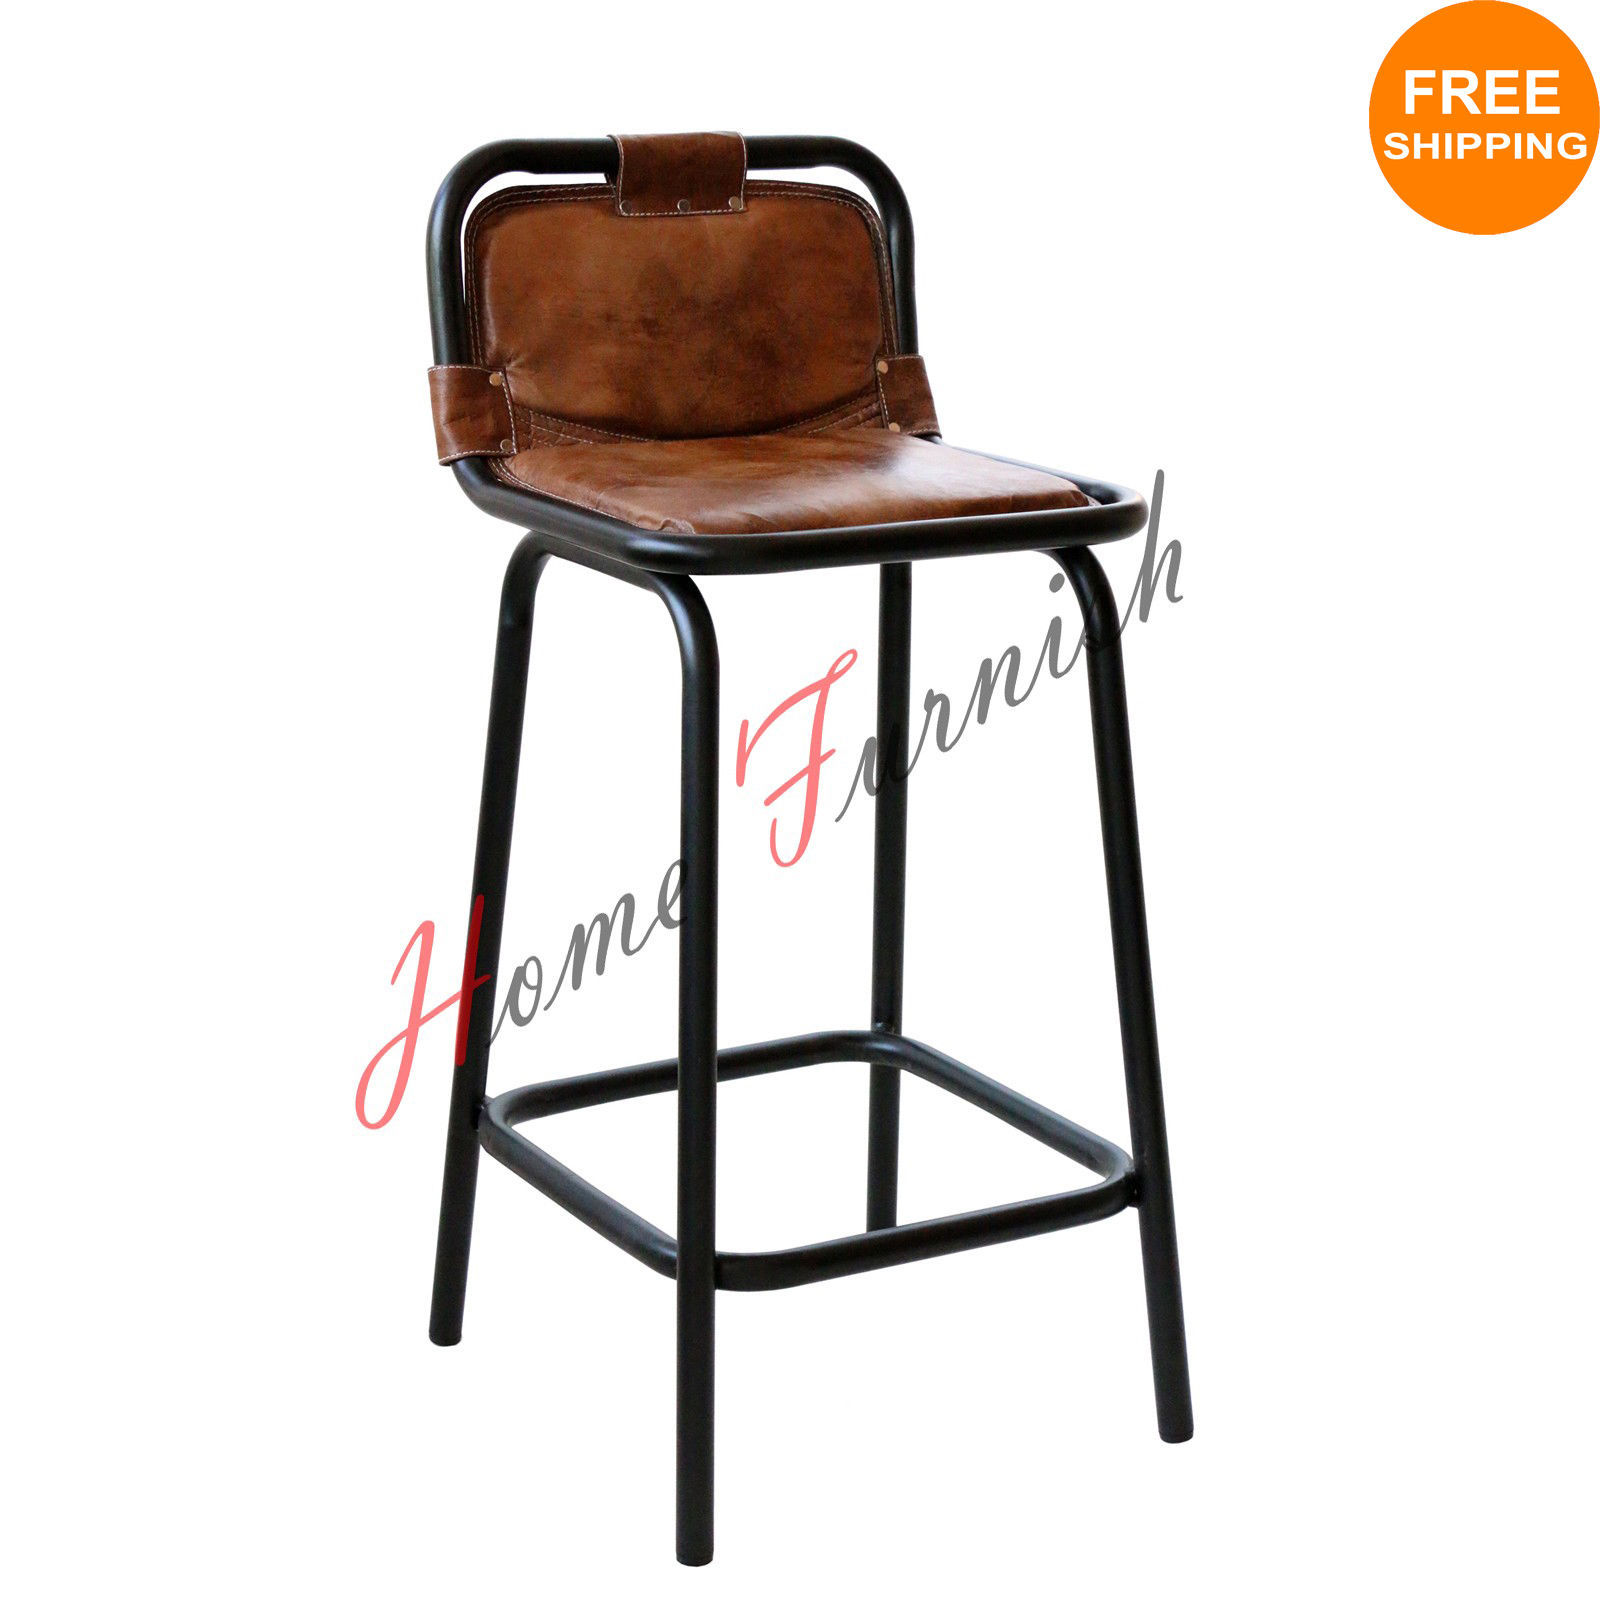 Vintage Style Industrial Kitchen Counter Stool Autehntic